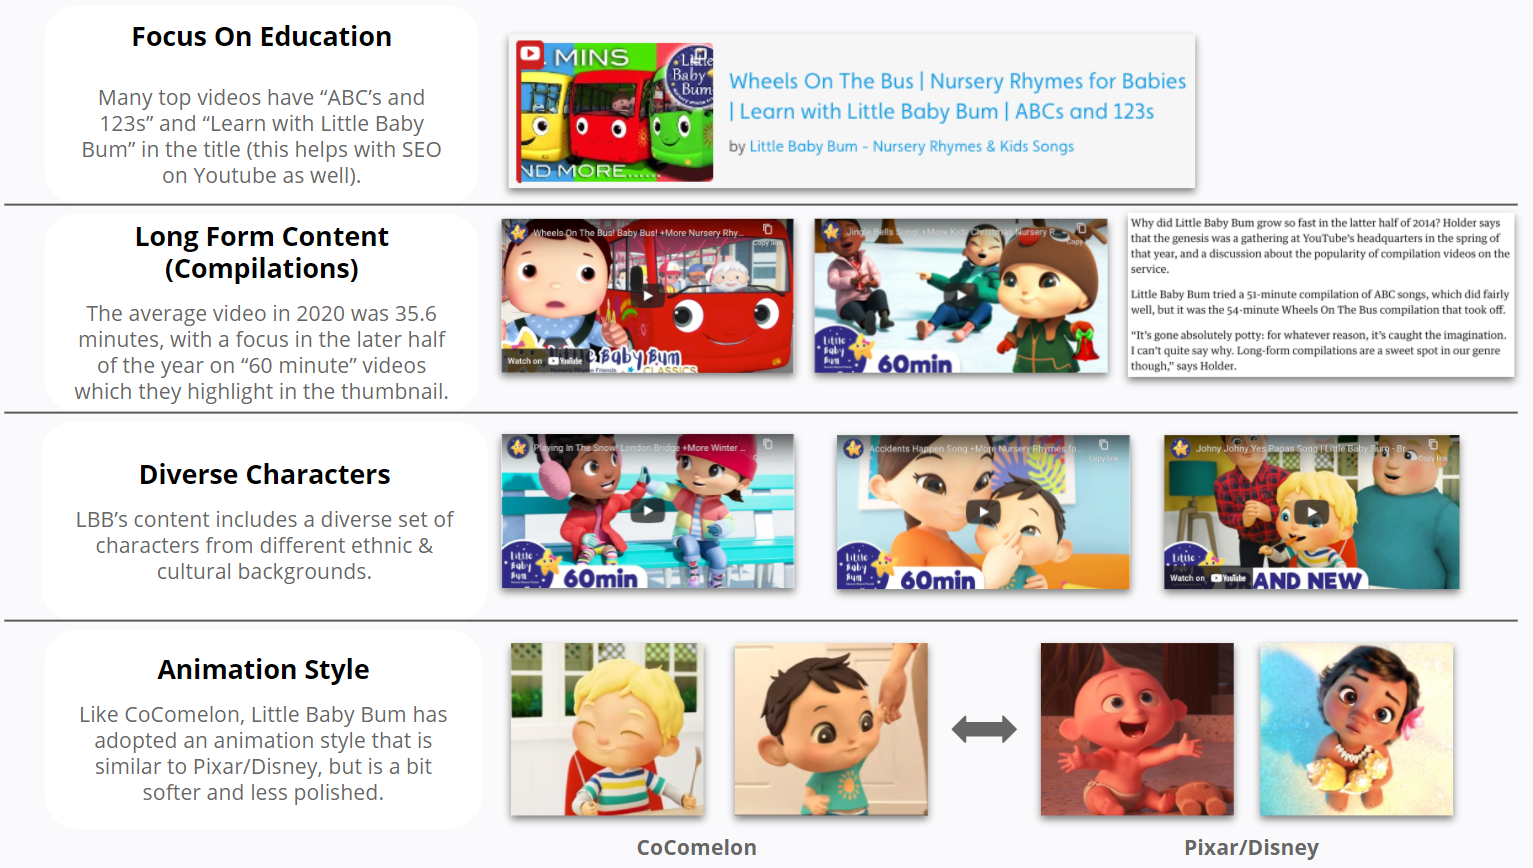 Little Baby Bum - What Little Baby Bum focuses on when making contents